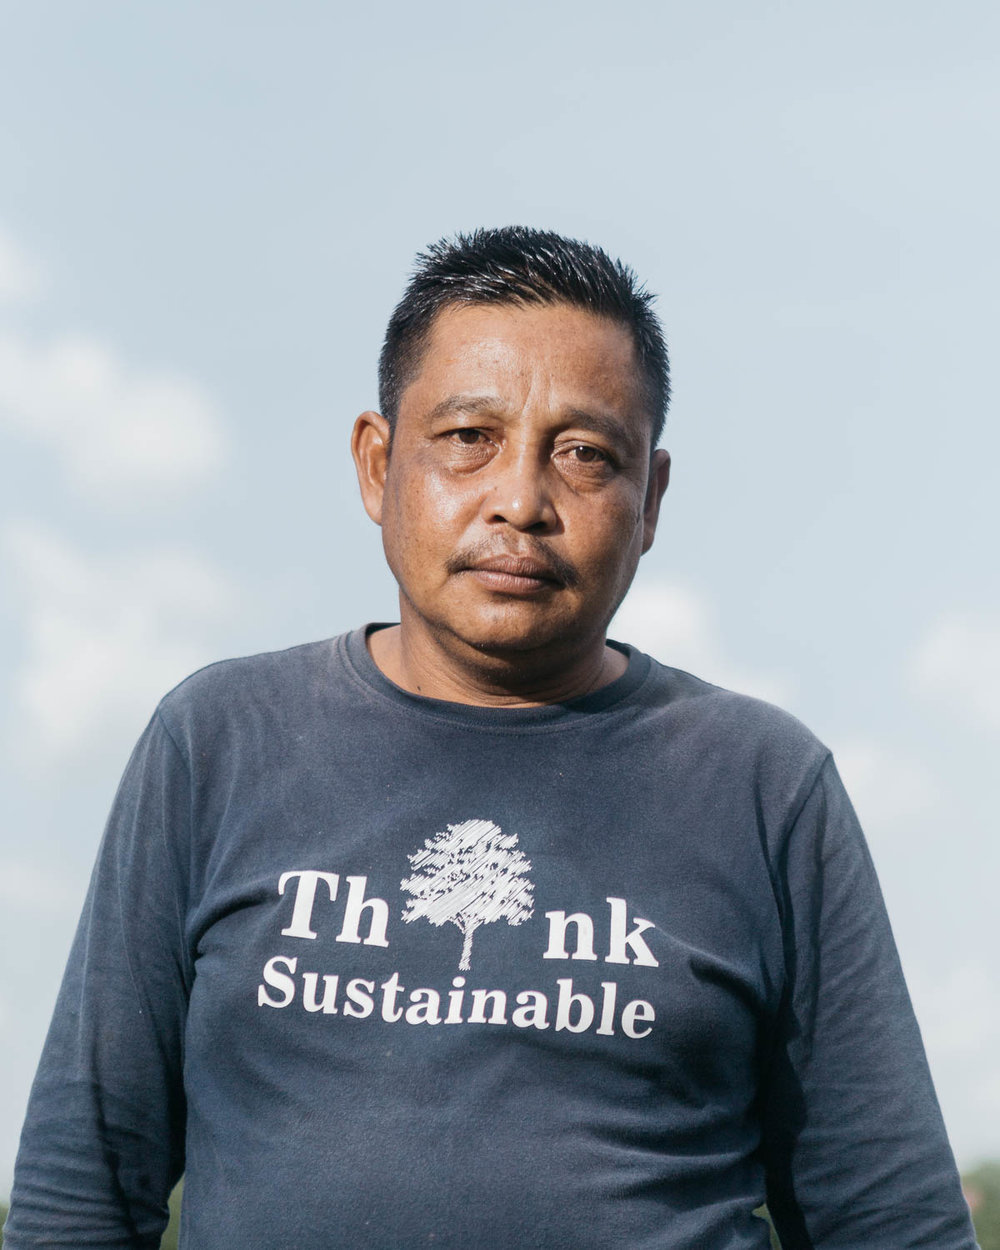 Portrait of Asdi, a villager who is benefited from Katingan Mentaya Project initiated by PT Rimba Makmur Utama. In the past he used to pratice slash and burn method for land clearing and also involved in illegal logging. He later joined the project and now actively promoting a more sustainable method for farming in his community. During the dry season, when the forest fire occasionally happen, he also acts as a firefighter.